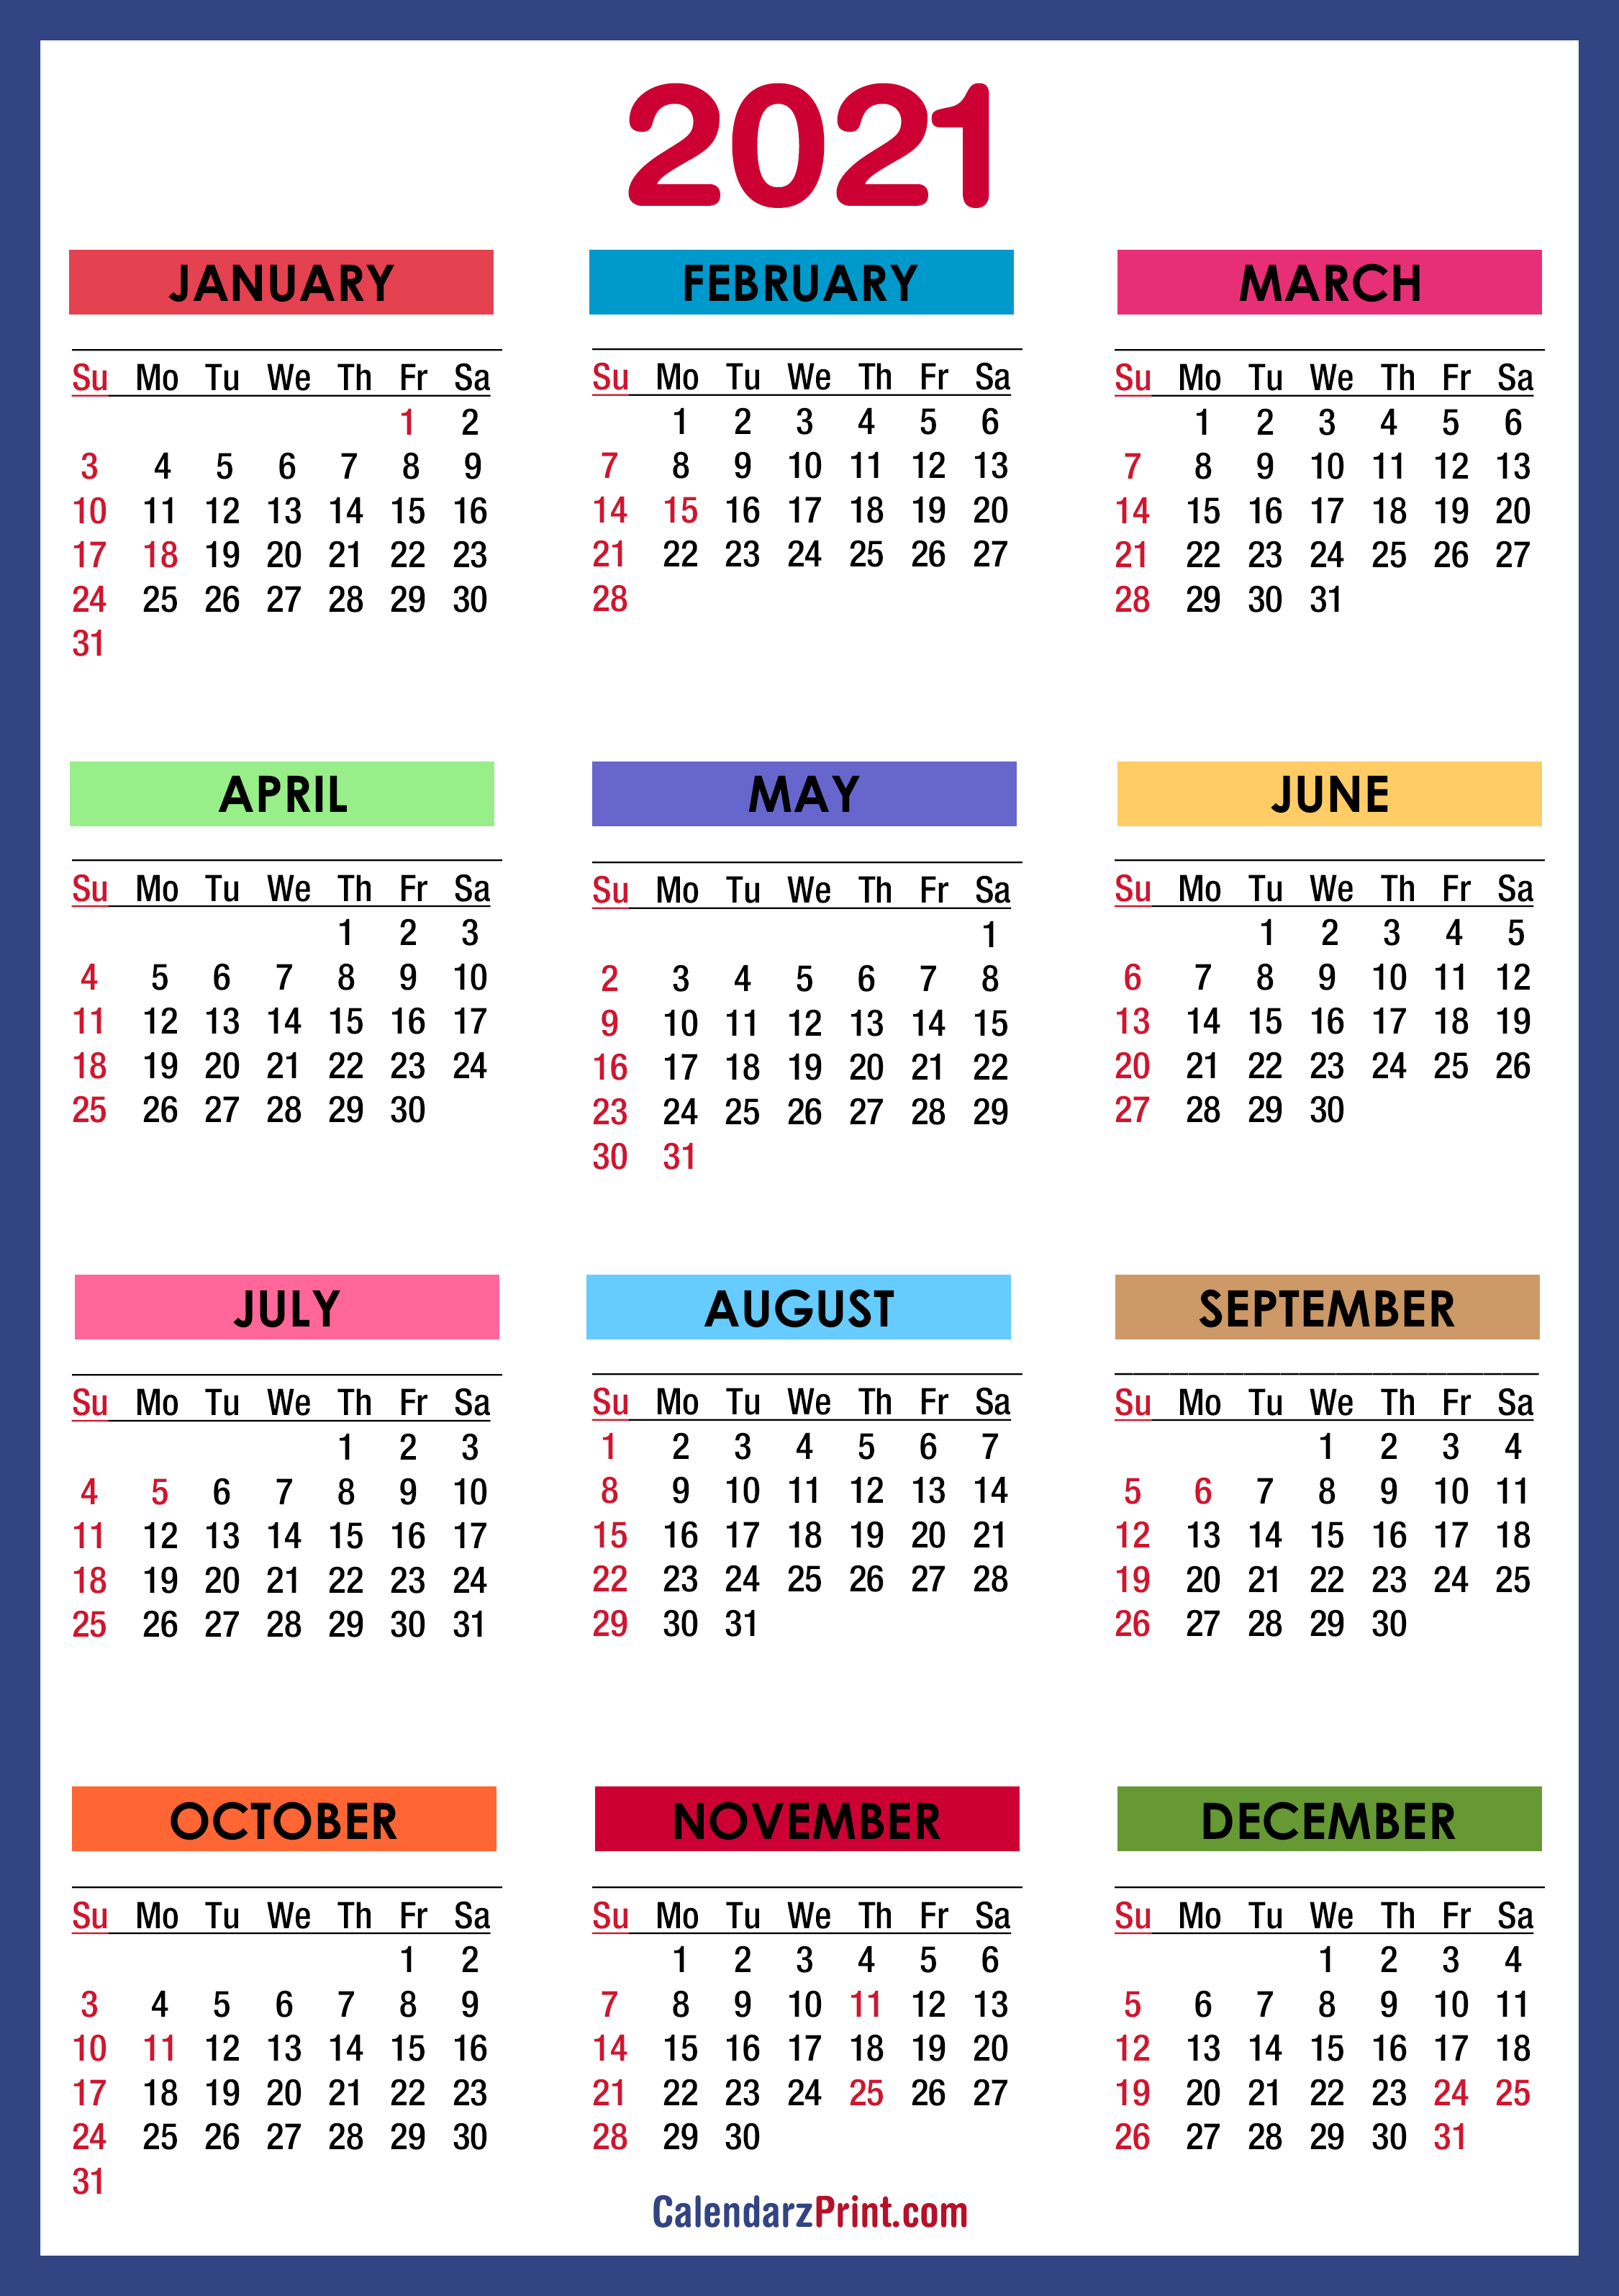 2021 Calendar with Holidays, Printable Free, Colorful, Blue, Green